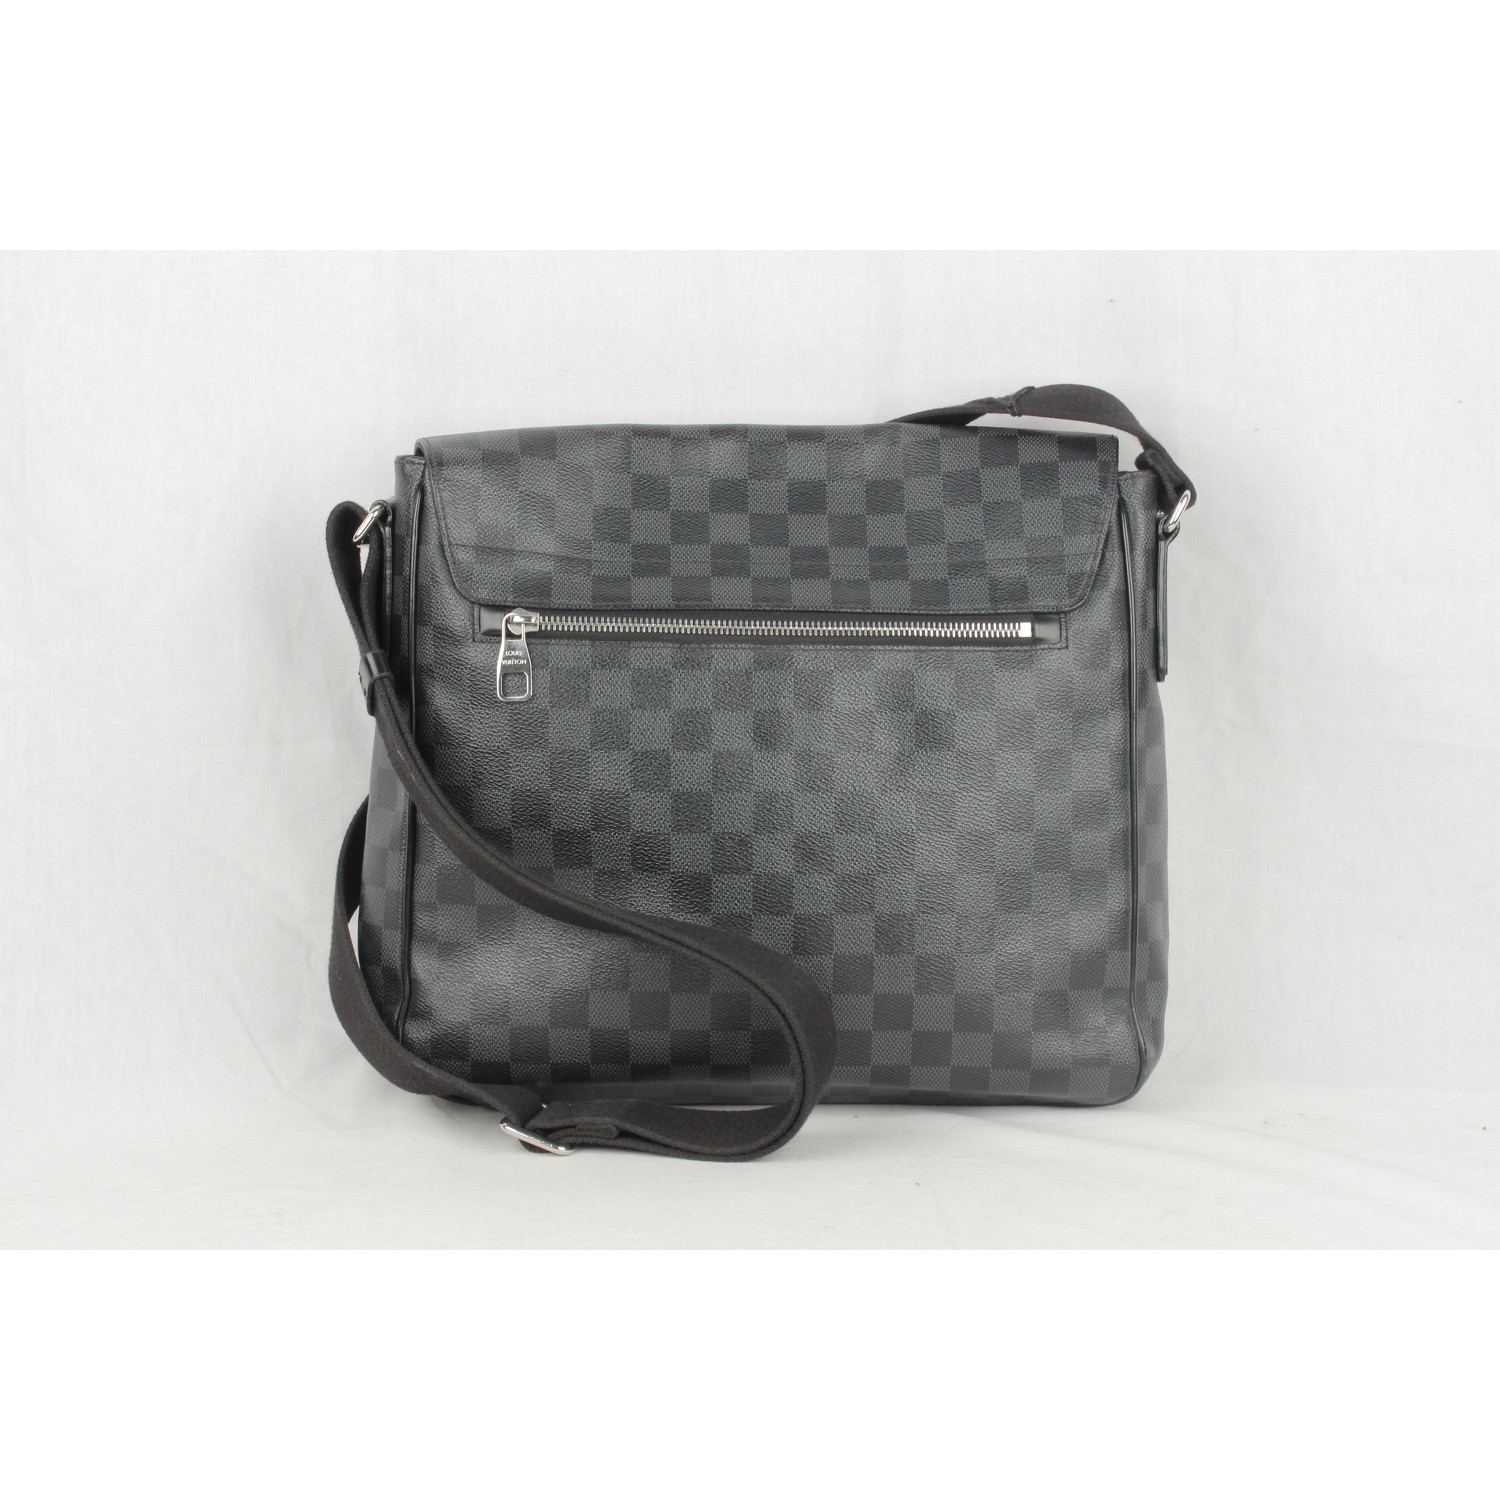 2feb548374763 Authentic LOUIS VUITTON Damier Graphite DISTRICT MM Messenger Bag